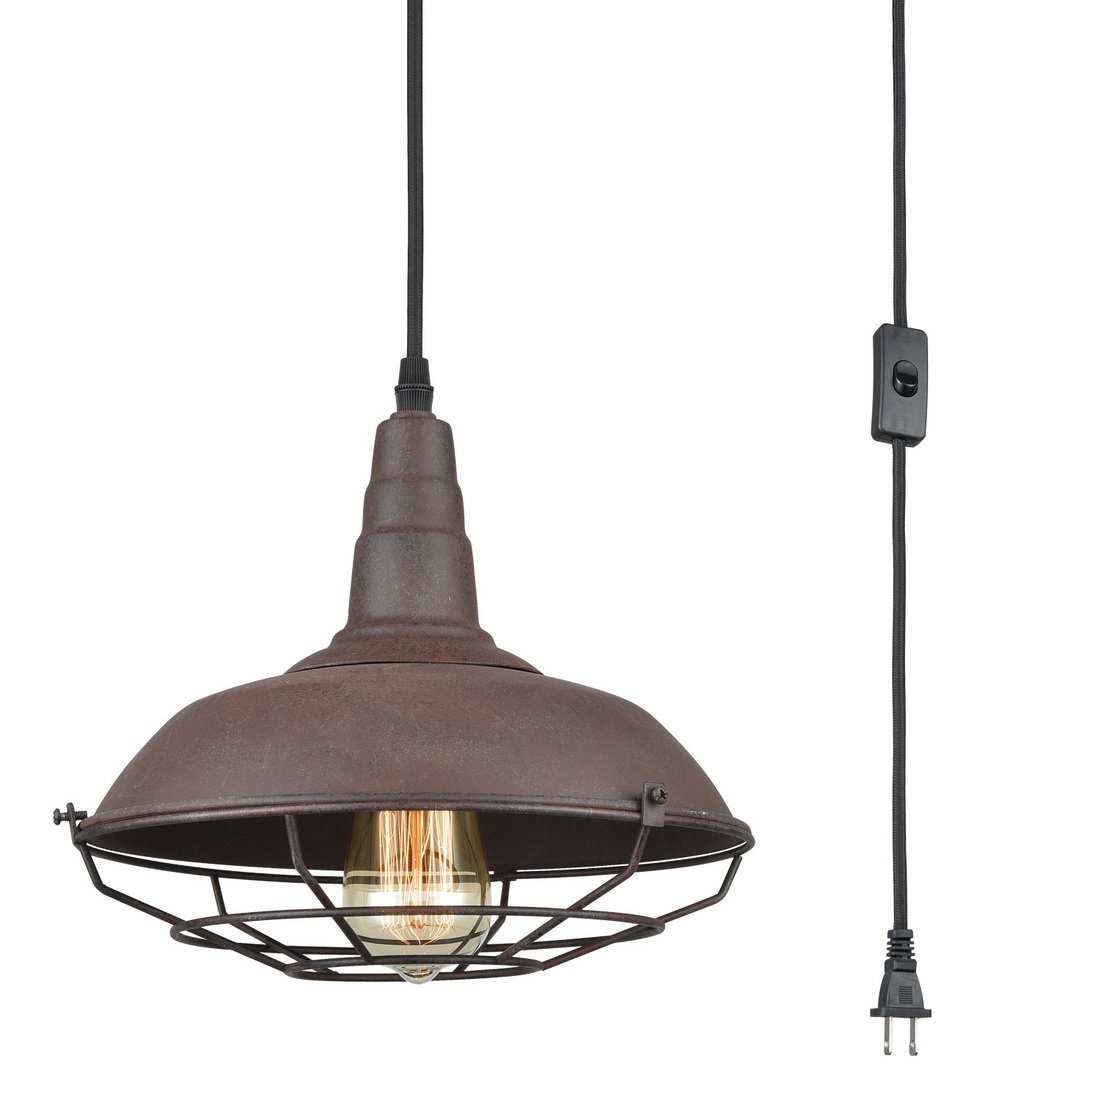 AXILAND Farmhouse Industrial Lighting Fixture Plug in Pendant Metal Hanging Lights by AXILAND